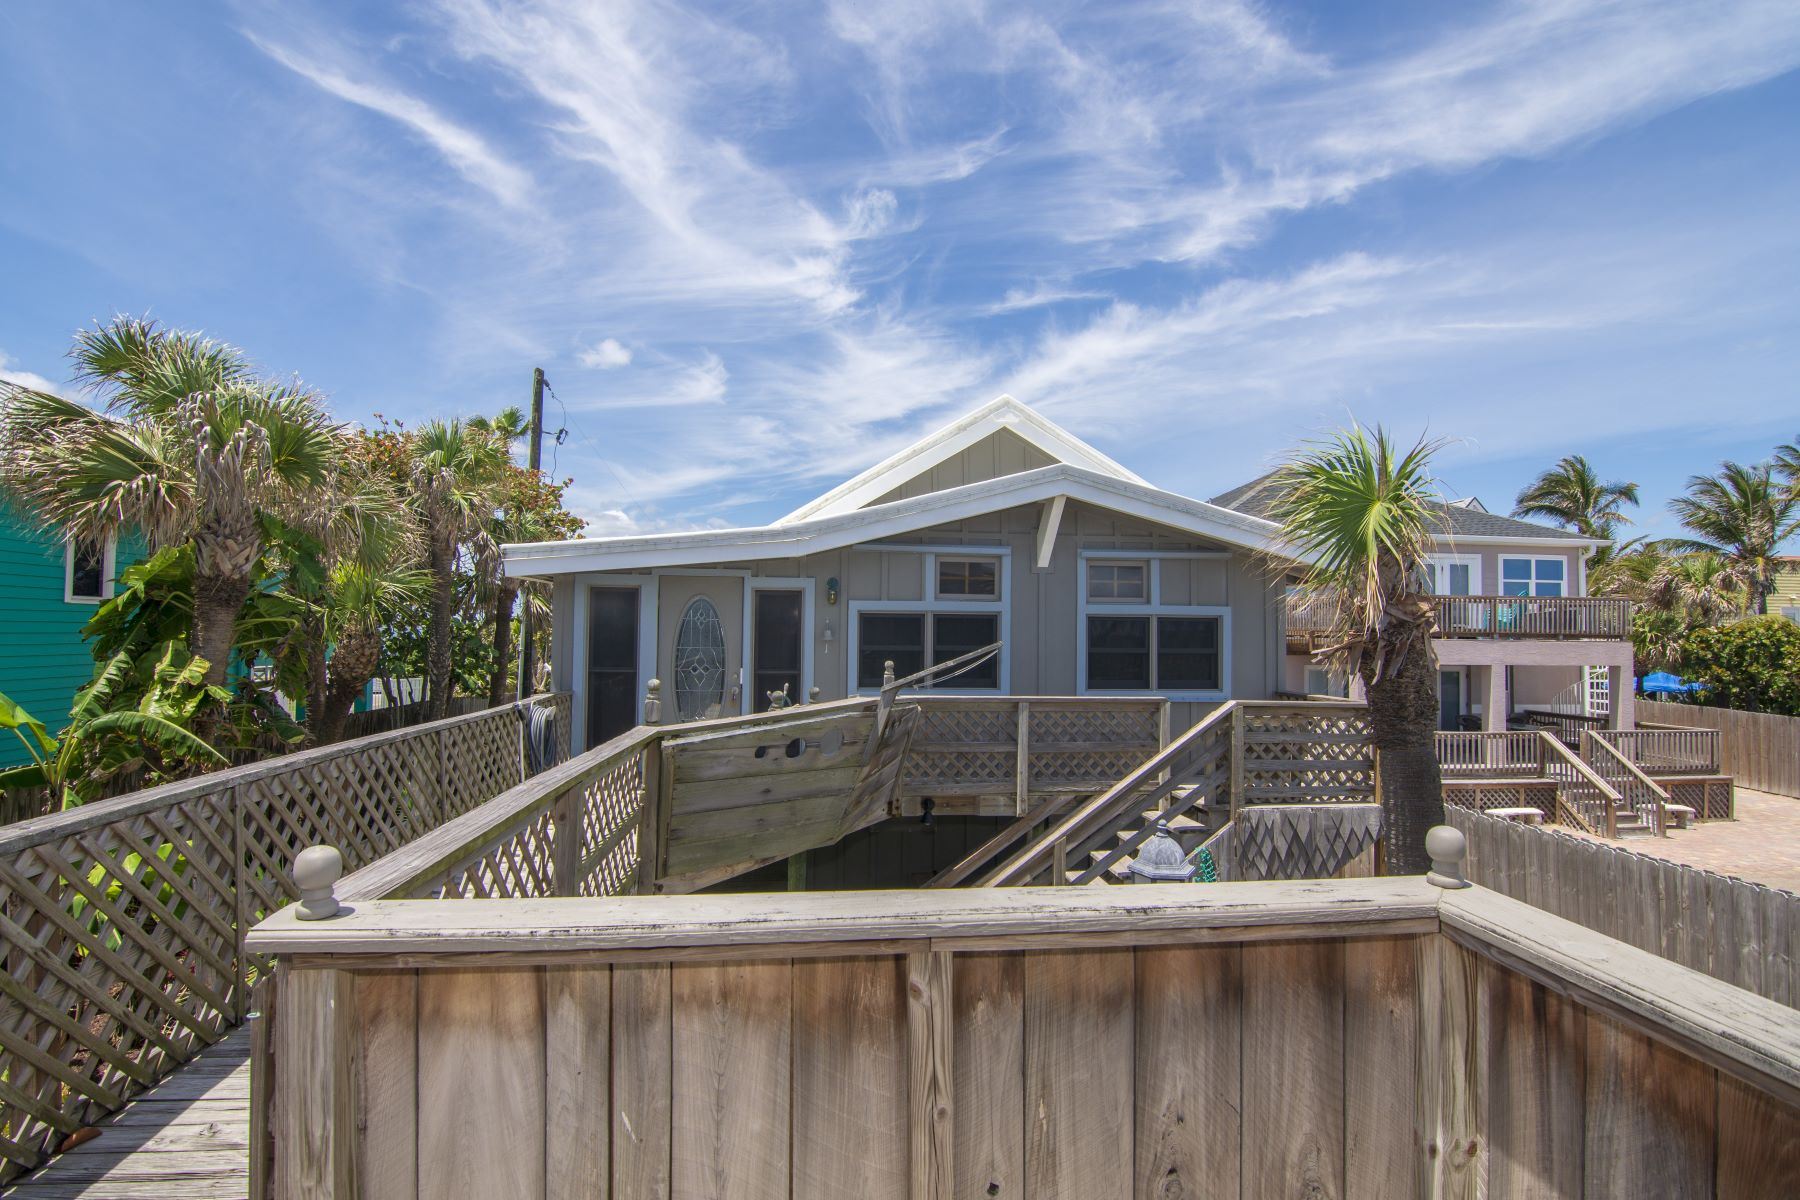 Property for Sale at 12930 Highway A1a, Vero Beach, FL 12930 Highway A1a Vero Beach, Florida 32963 United States